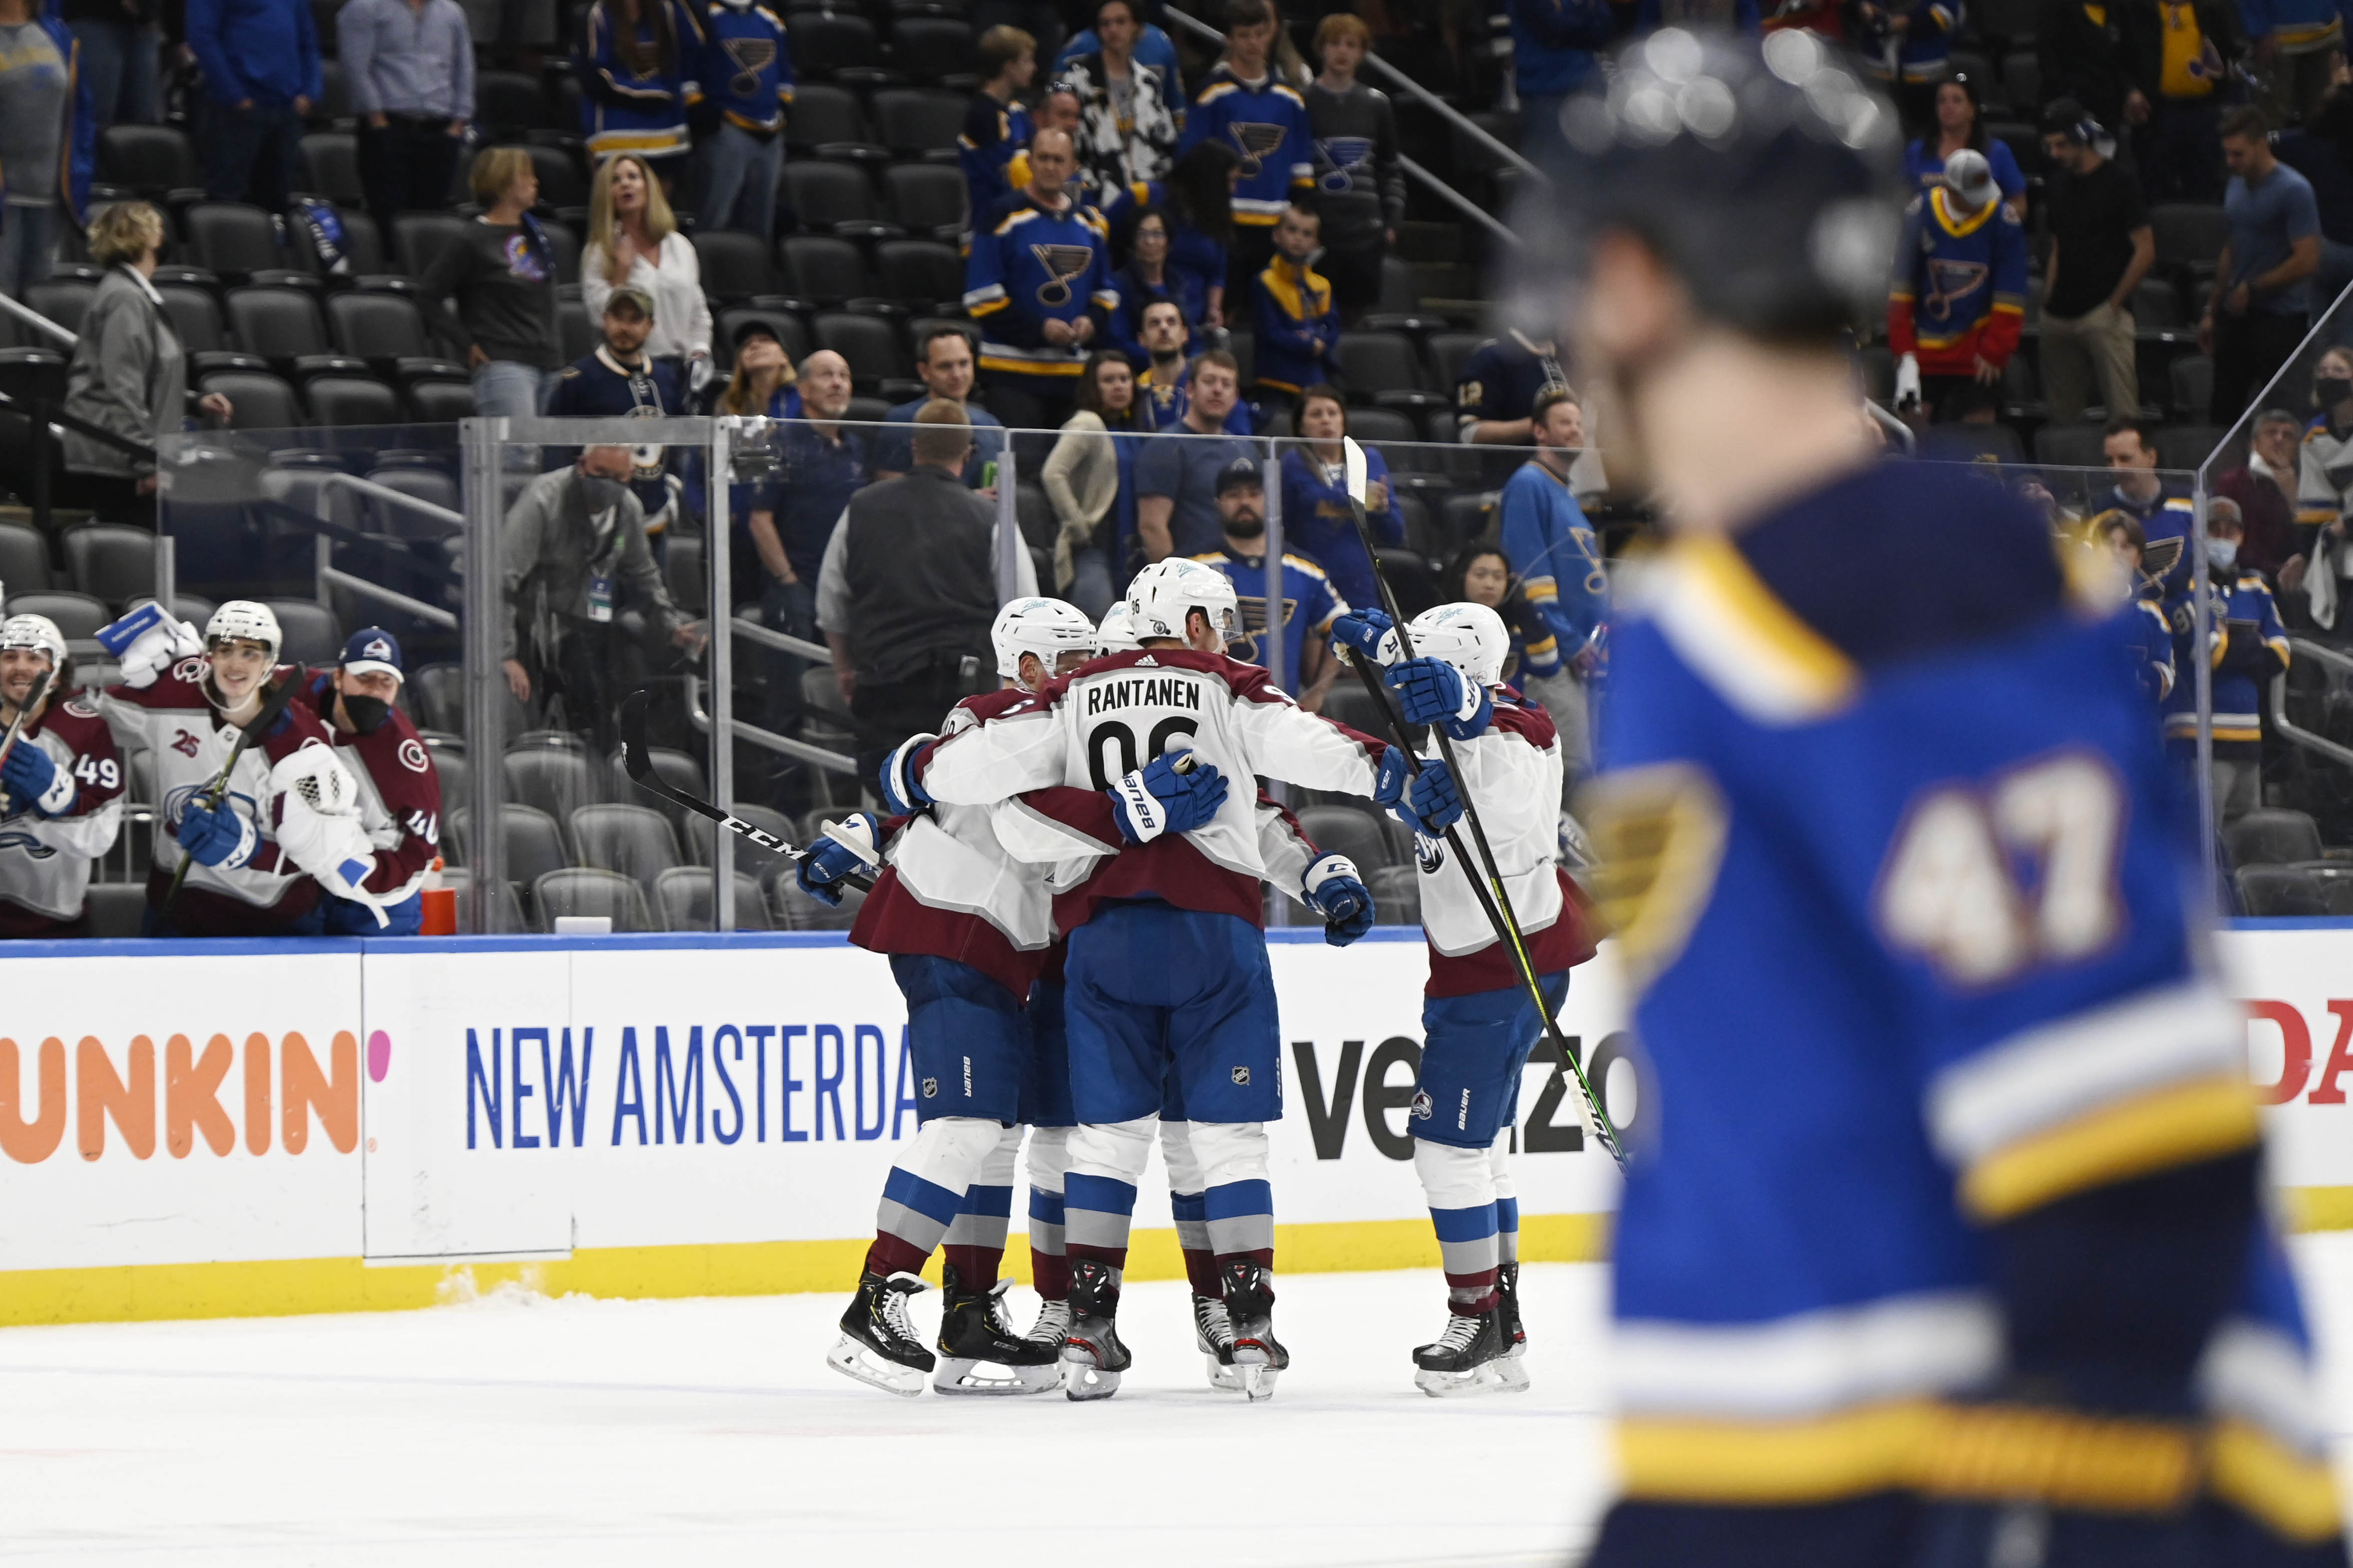 Colorado Avalanche center Nathan MacKinnon (29) is congratulated by teammates after scoring an empty net goal against the St. Louis Blues in the third period in game four of the first round of the 2021 Stanley Cup Playoffs at Enterprise Center.